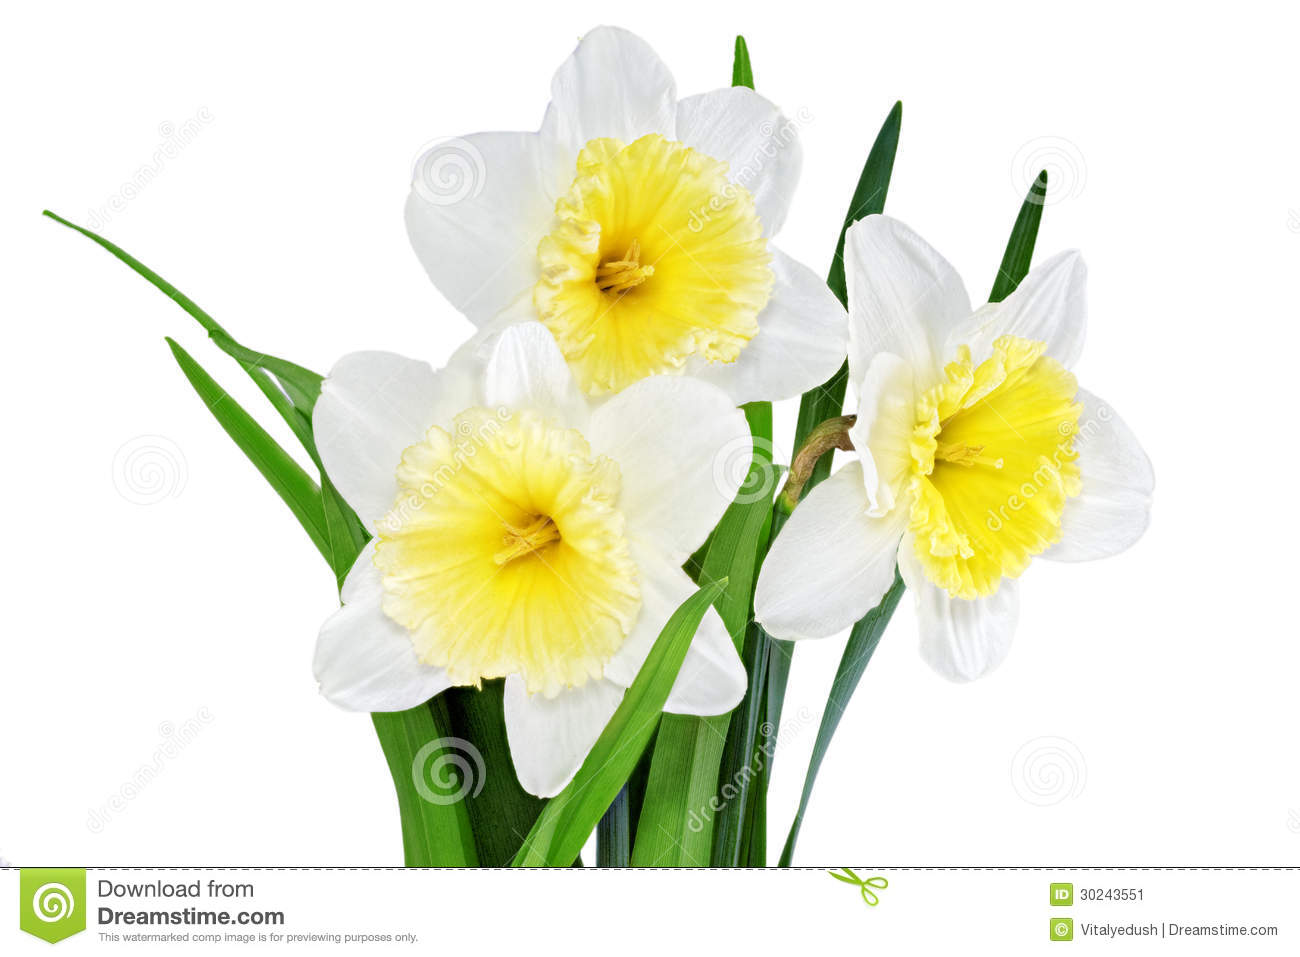 Beautiful spring flowers yellow white narcissus daffodil stock download beautiful spring flowers yellow white narcissus daffodil stock image image mightylinksfo